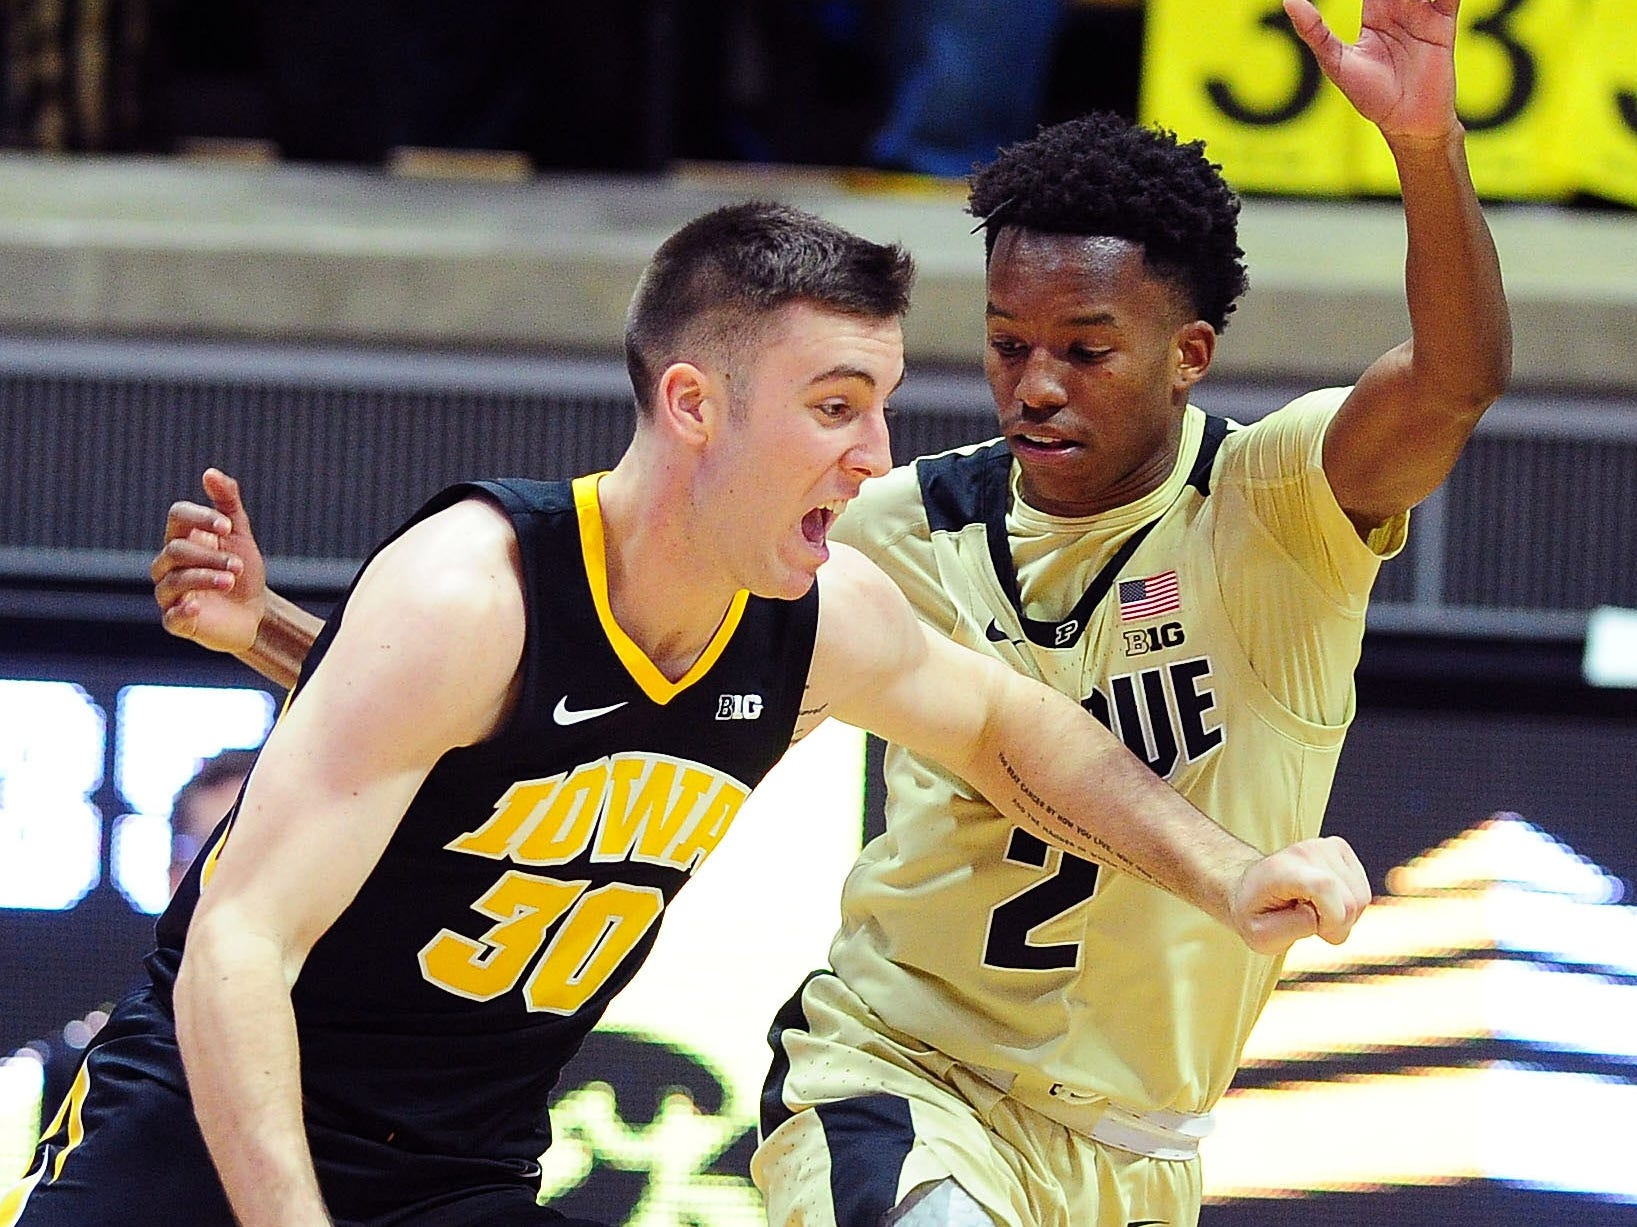 Jan 3, 2019; West Lafayette, IN, USA; Iowa Hawkeyes guard Connor McCaffery  (30) drives toward the basket against Purdue Boilermakers guard Eric Hunter (2) in the second half at Mackey Arena. Mandatory Credit: Thomas J. Russo-USA TODAY Sports